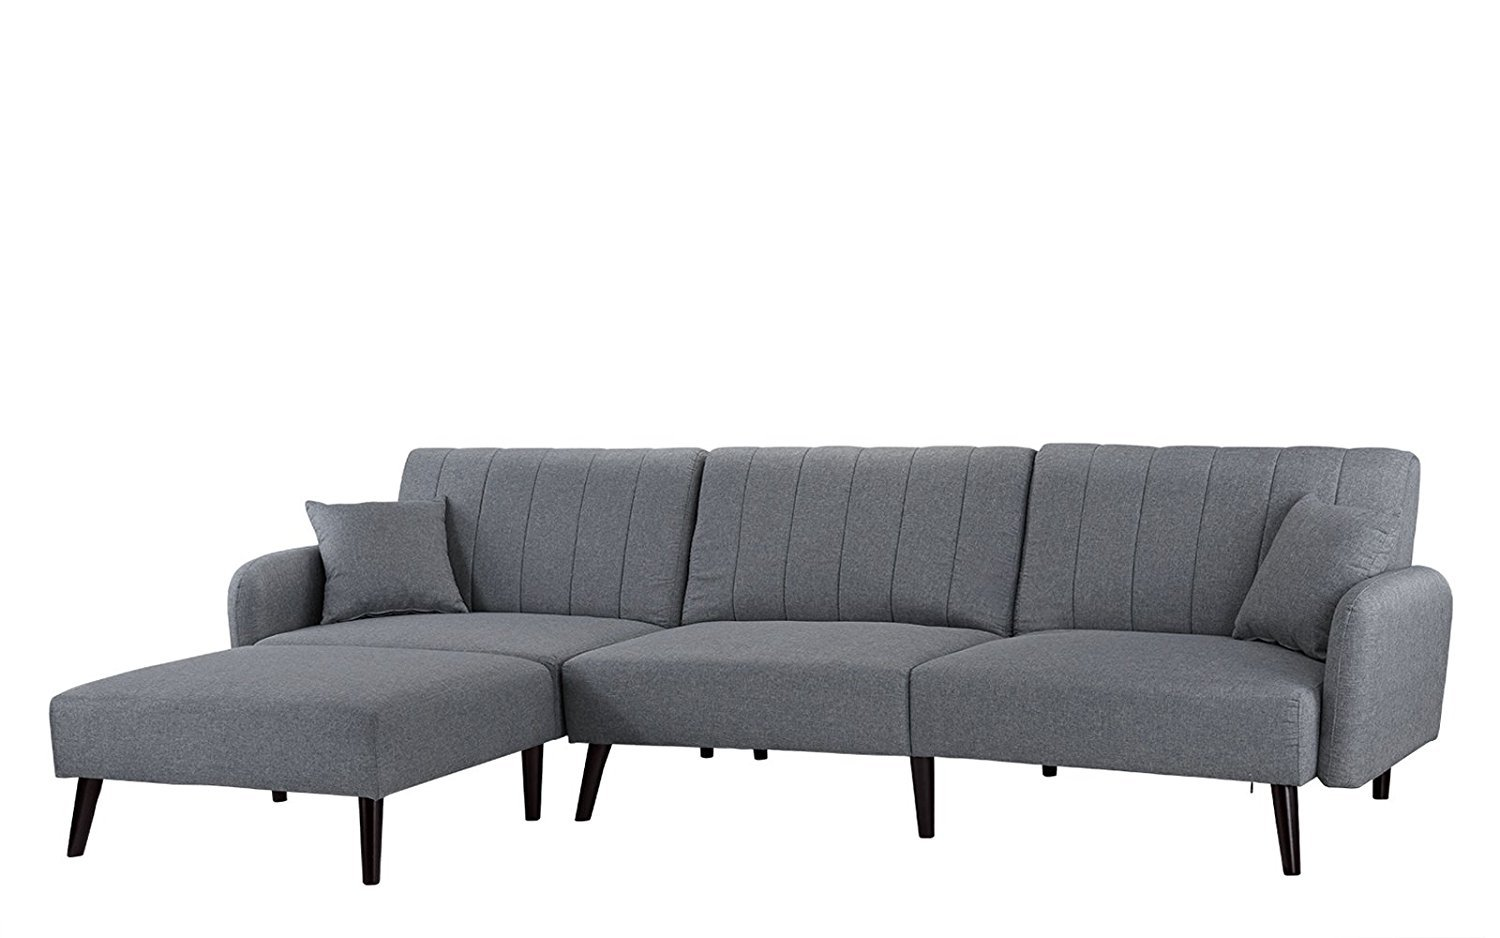 Sofa Bed For Sale Regina Details About Mid Century Modern Fabric Sleeper Futon Sofa Living Room L Shape Light Grey